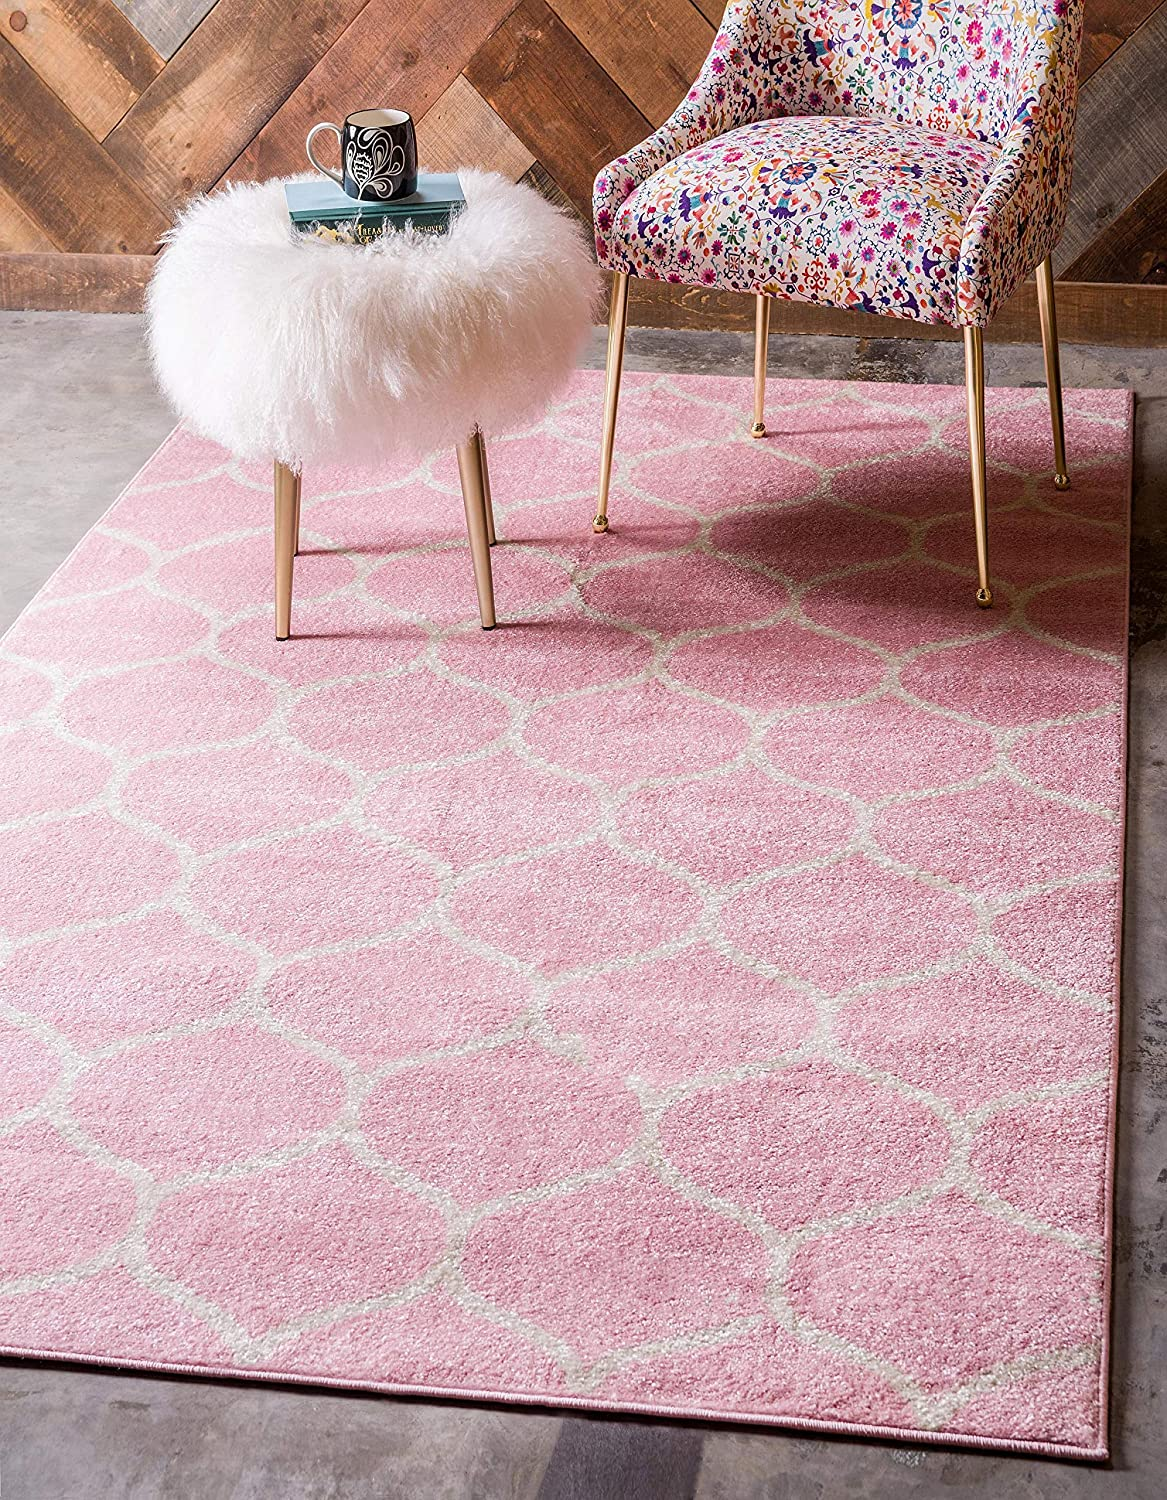 Unique Loom Trellis Frieze Collection Lattice Moroccan Geometric Modern Pink Area Rug (5' 0 x 8' 0)